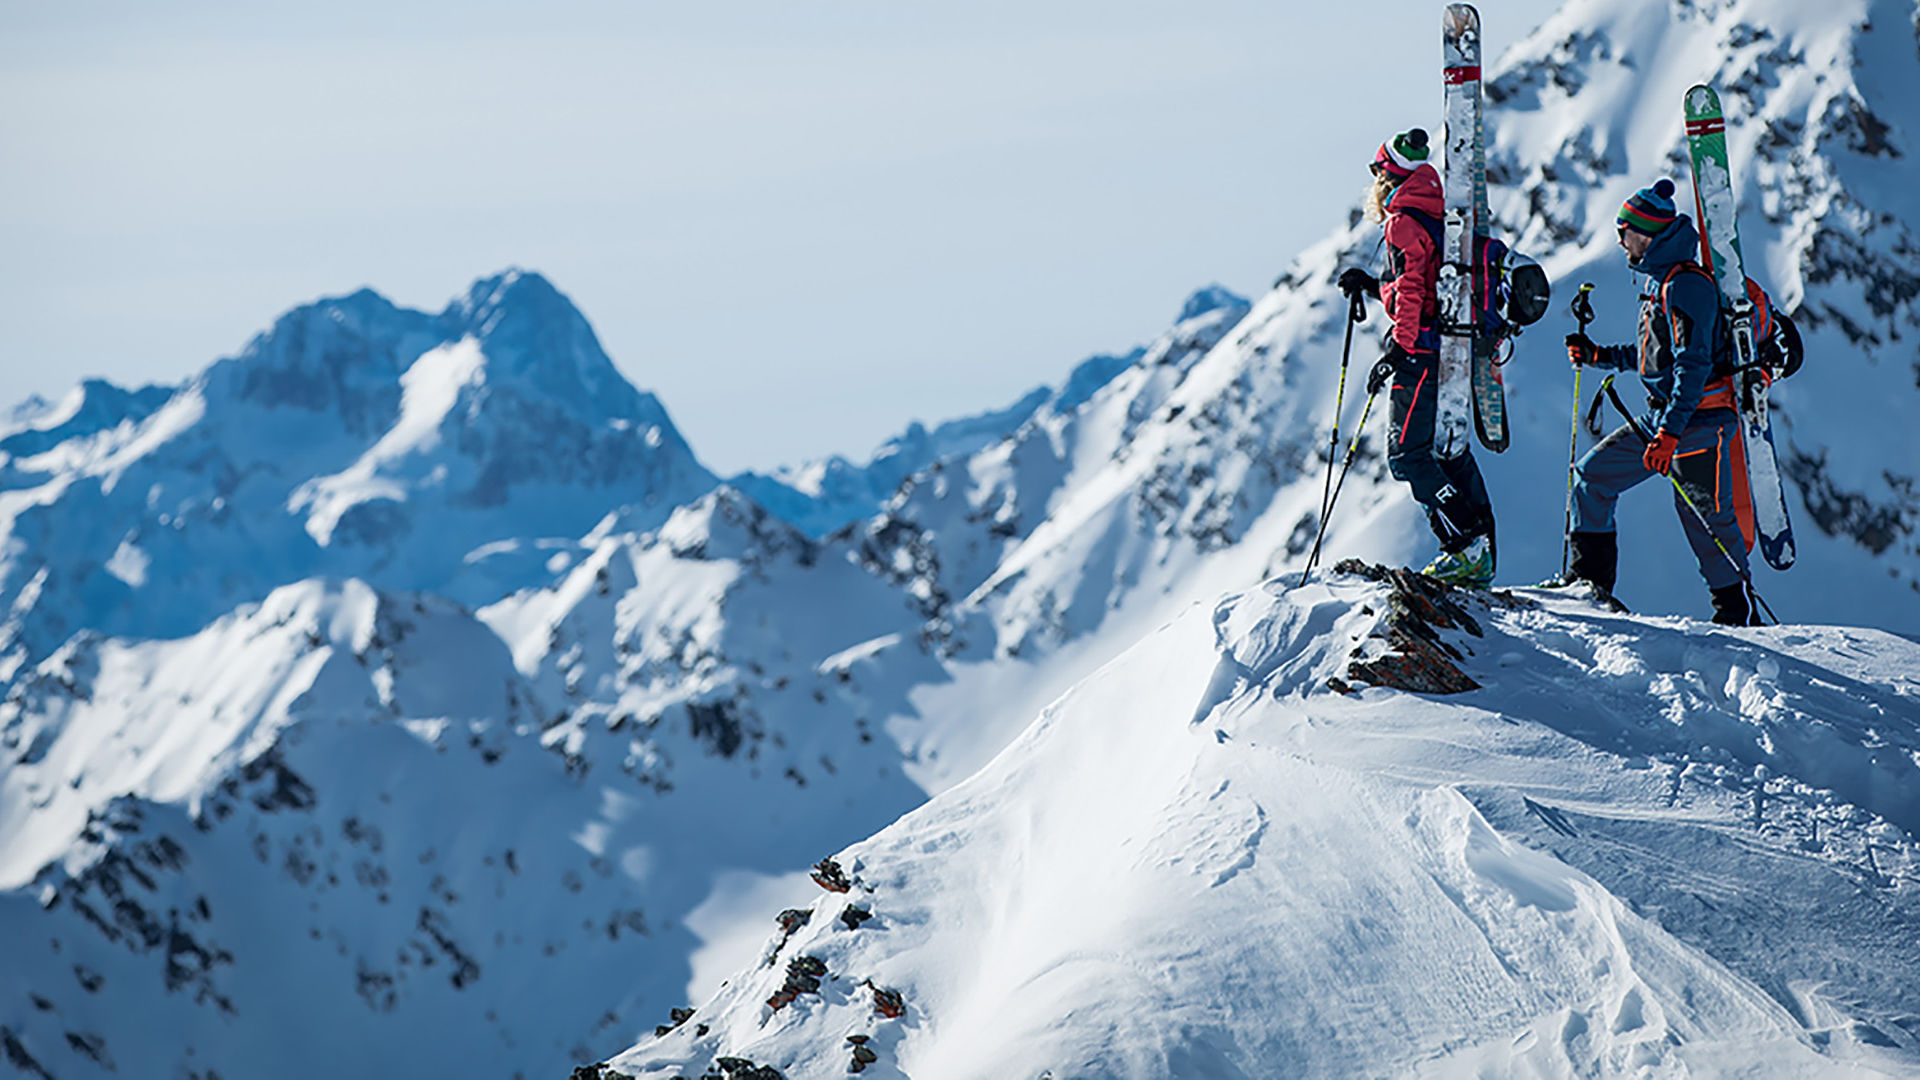 Two freeride skiers standing on top of the mountain searching for the perfect line